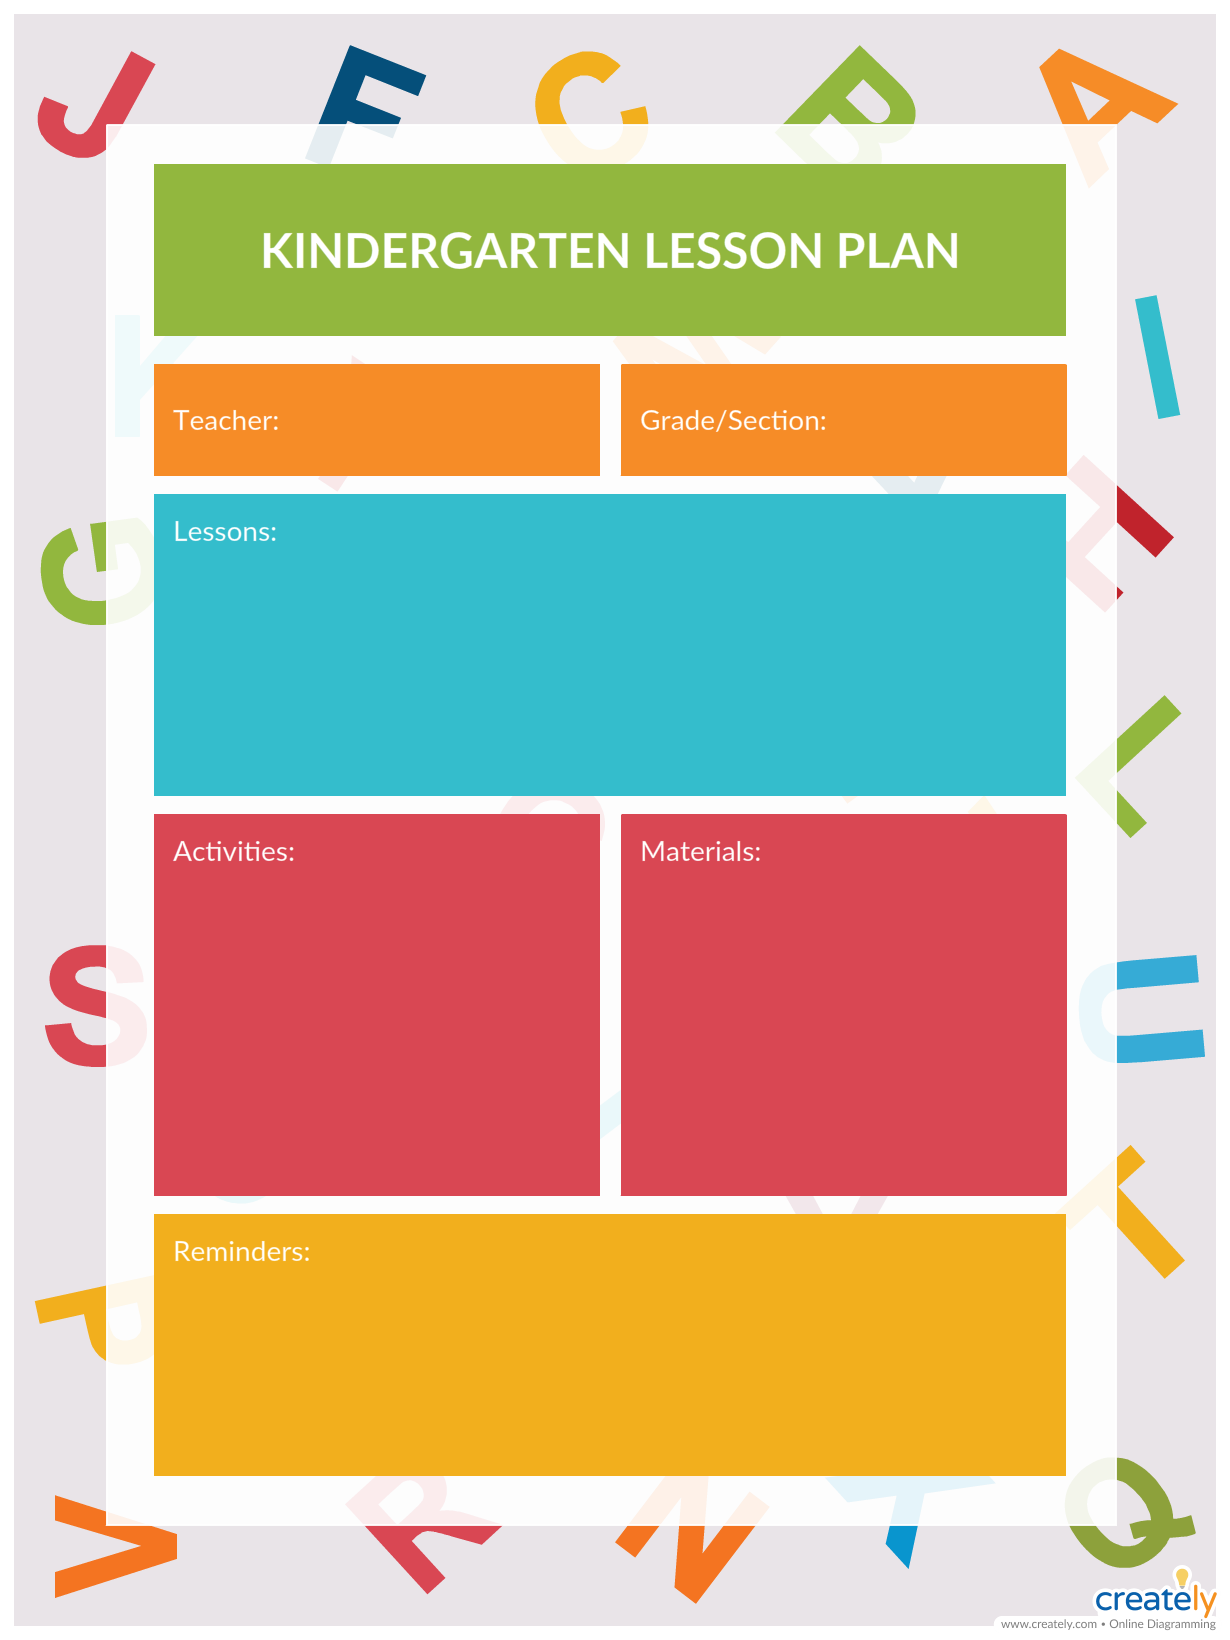 small resolution of give your class a head start on essential elementary school skills with this kindergarten lesson plan template use creately s easy online diagram editor to